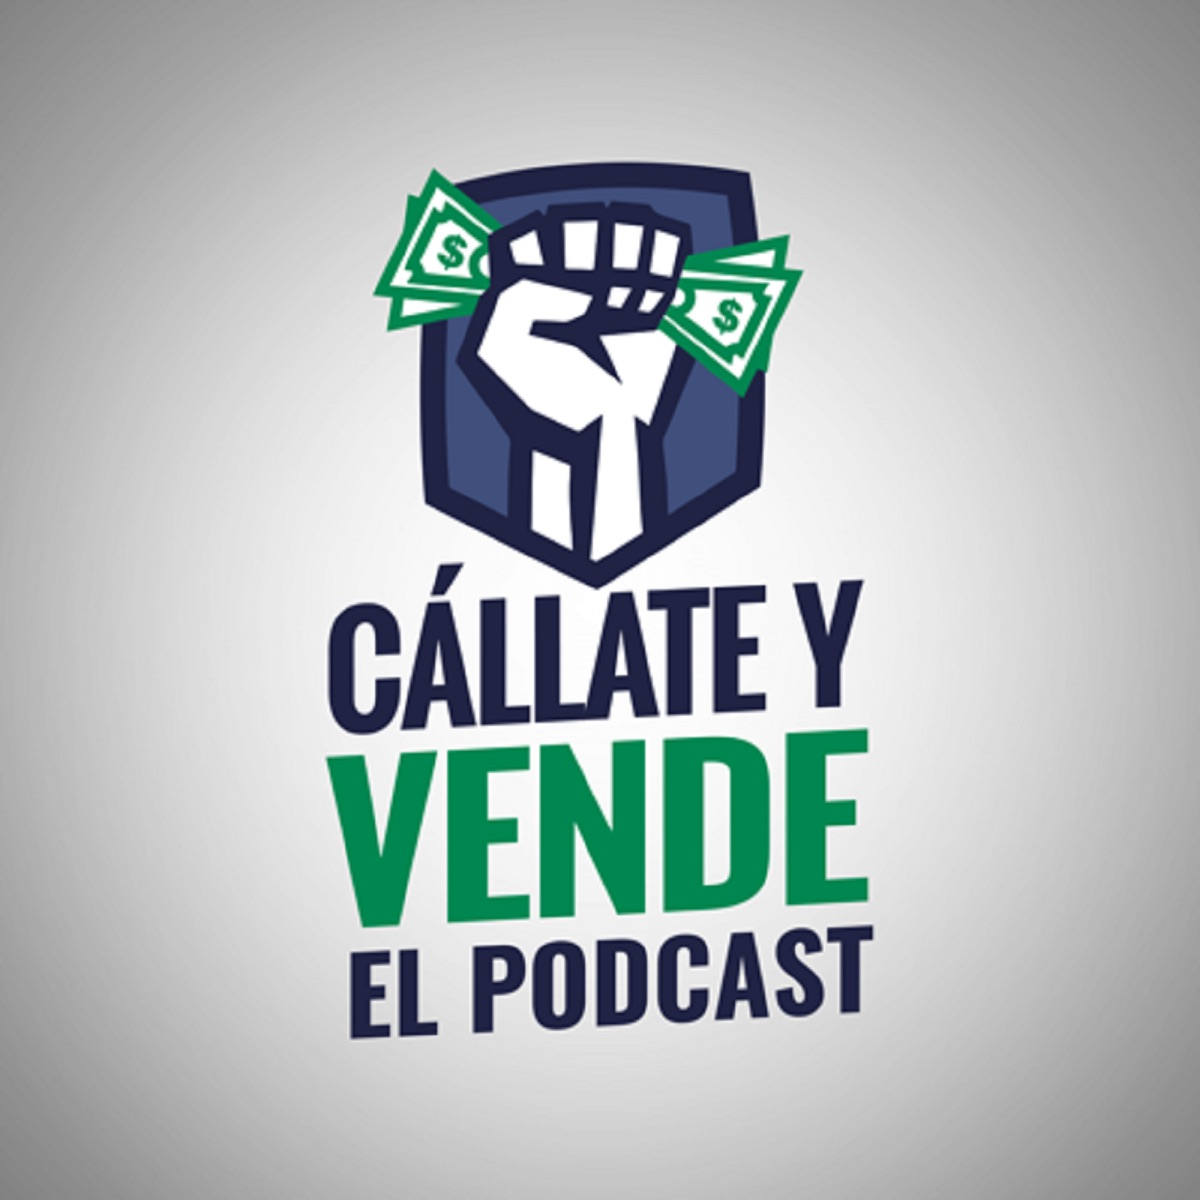 Callate Y Vende Podcast Podtail Information and translations of callate in the most comprehensive dictionary definitions resource on the web. podtail